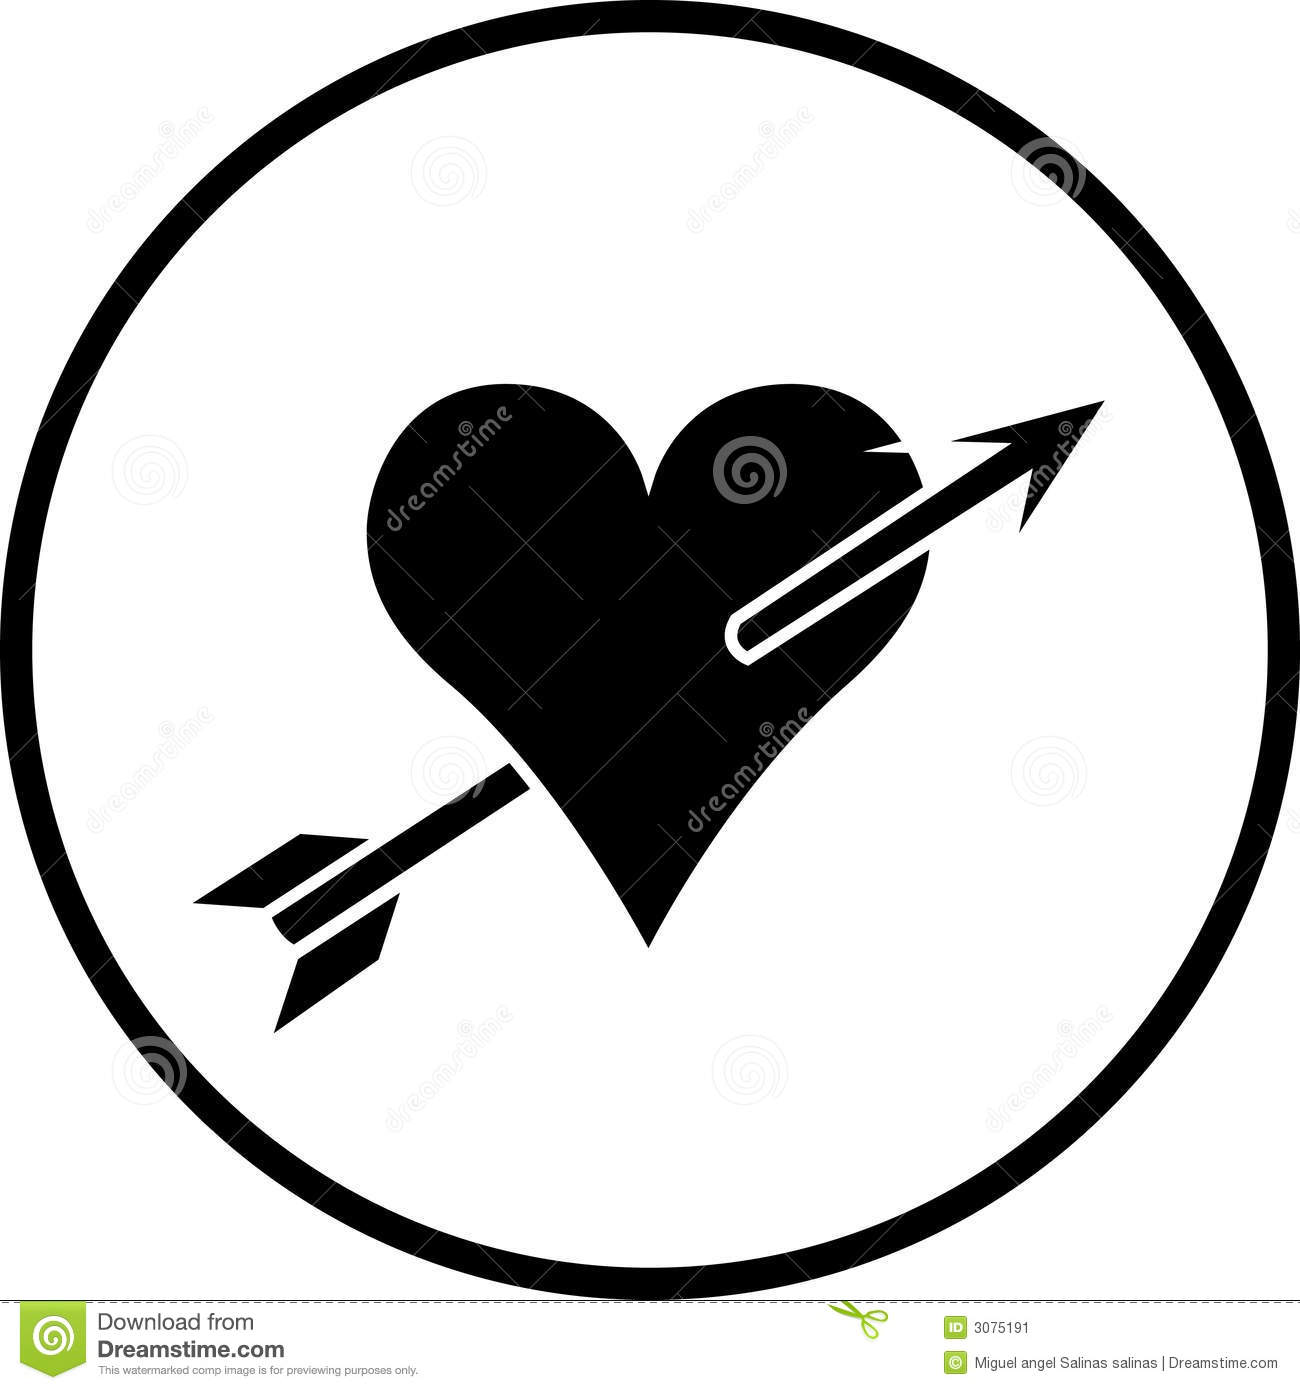 Heart With Arrow Vector Symbol Stock Image - Image: 3075191